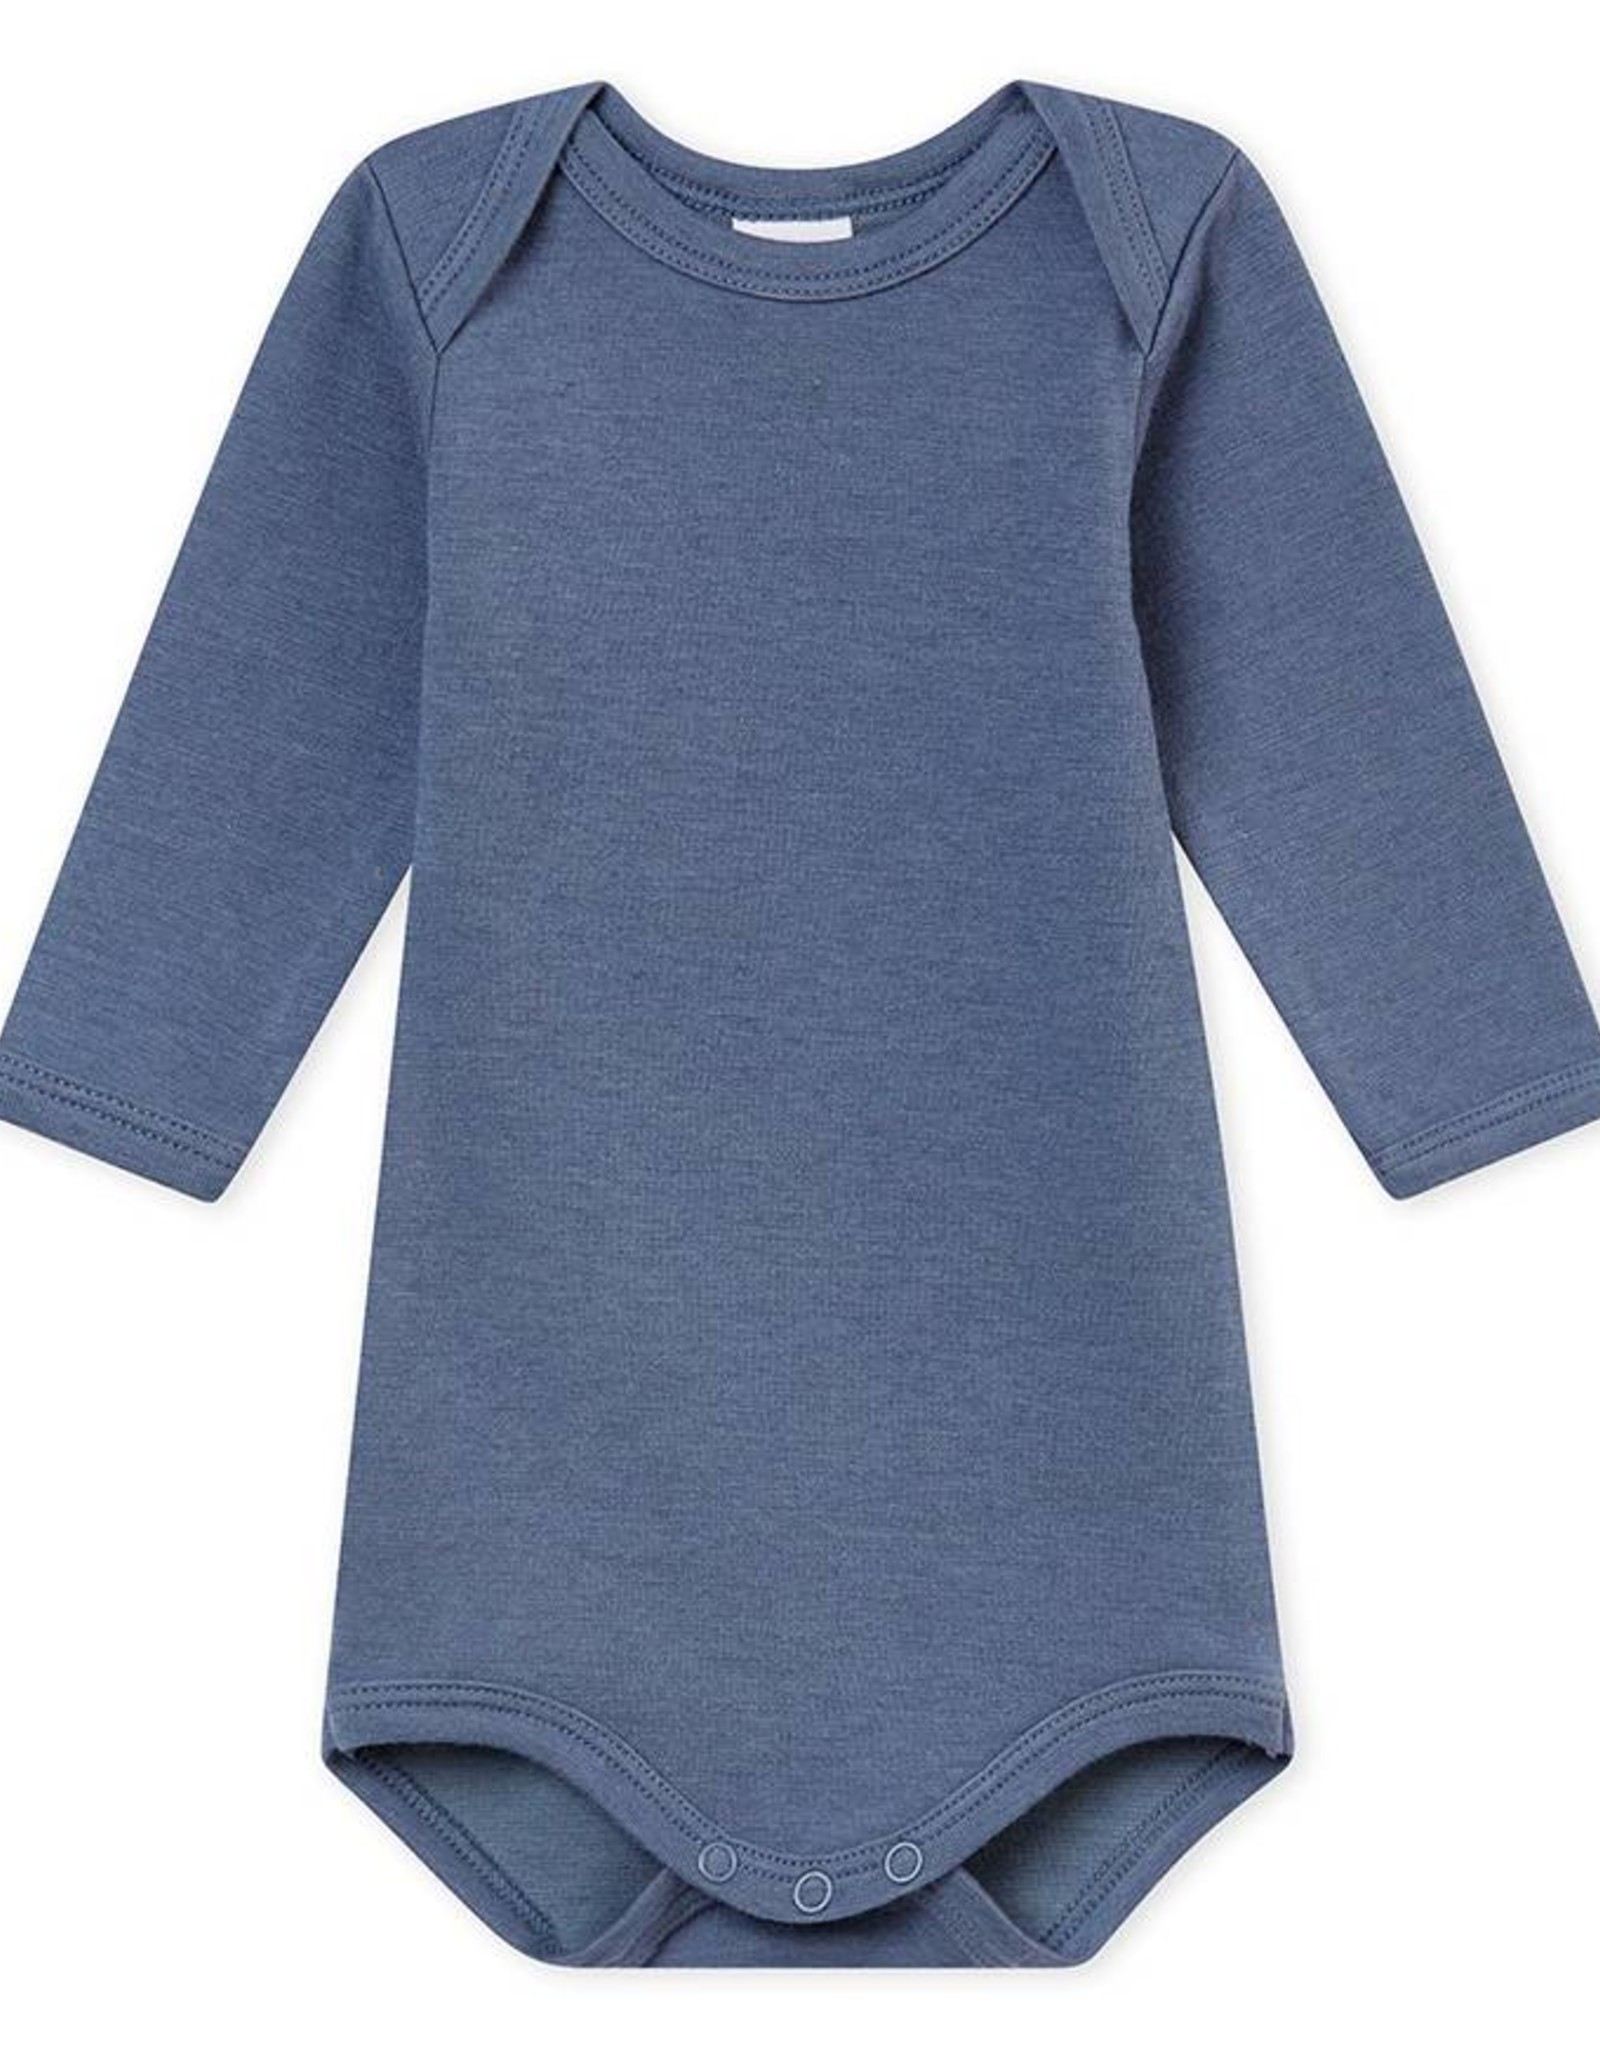 Wool and cotton bodysuit